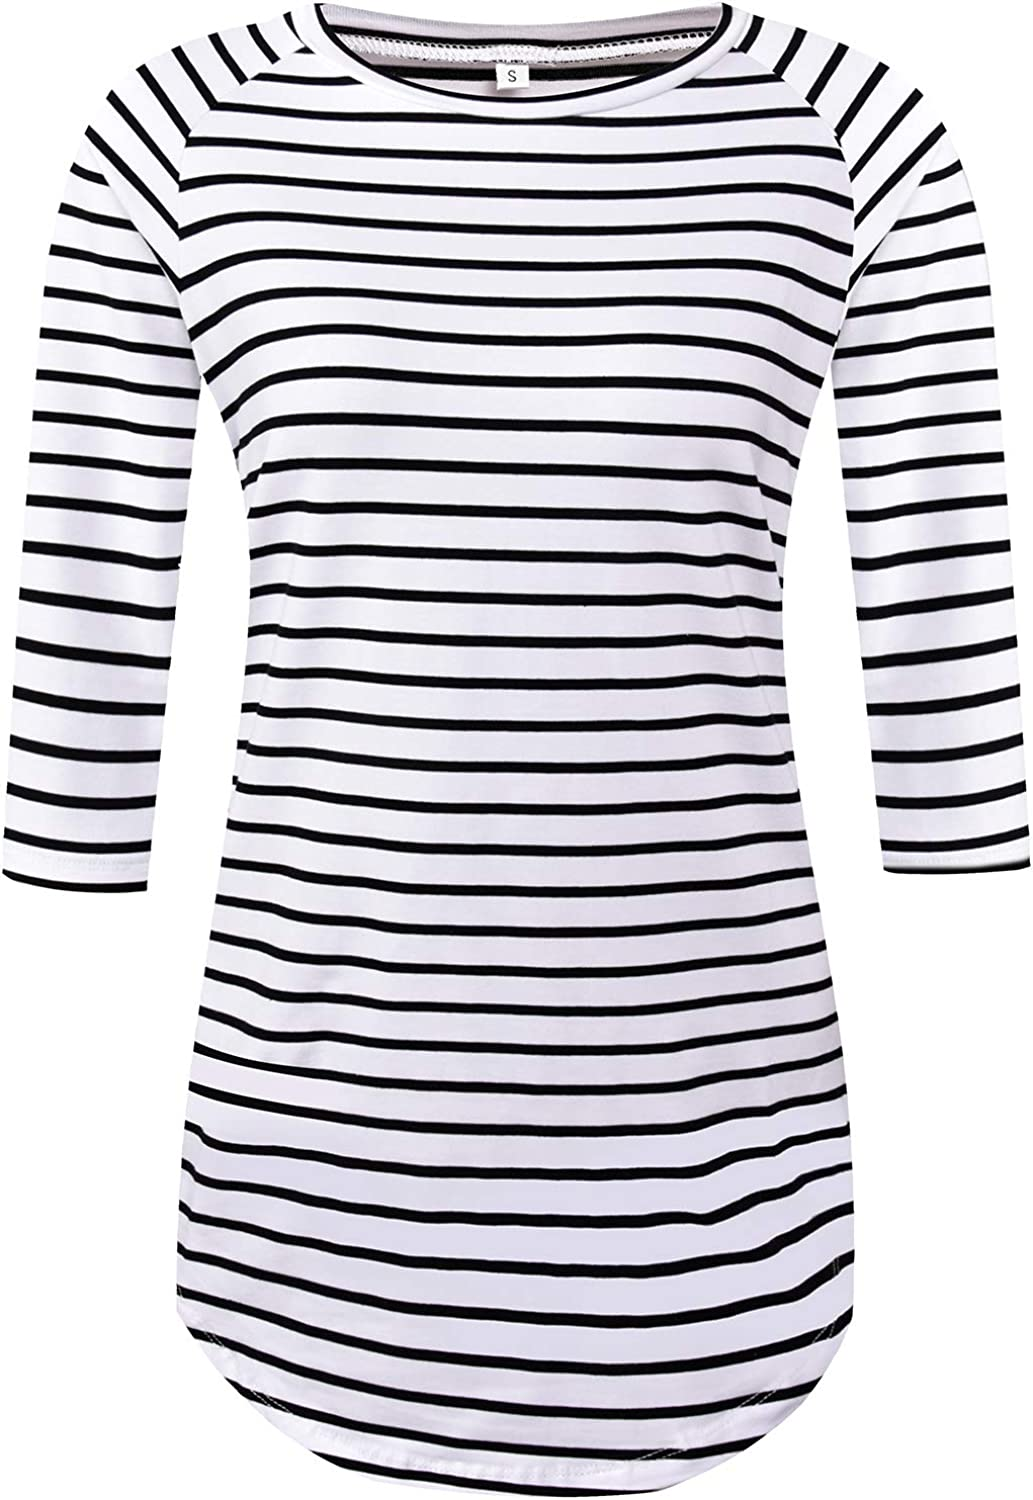 LilyCoco Women's Long Sleeve Striped T Shirt Tunic Tops for Leggings Slim Fit Tee Blouses